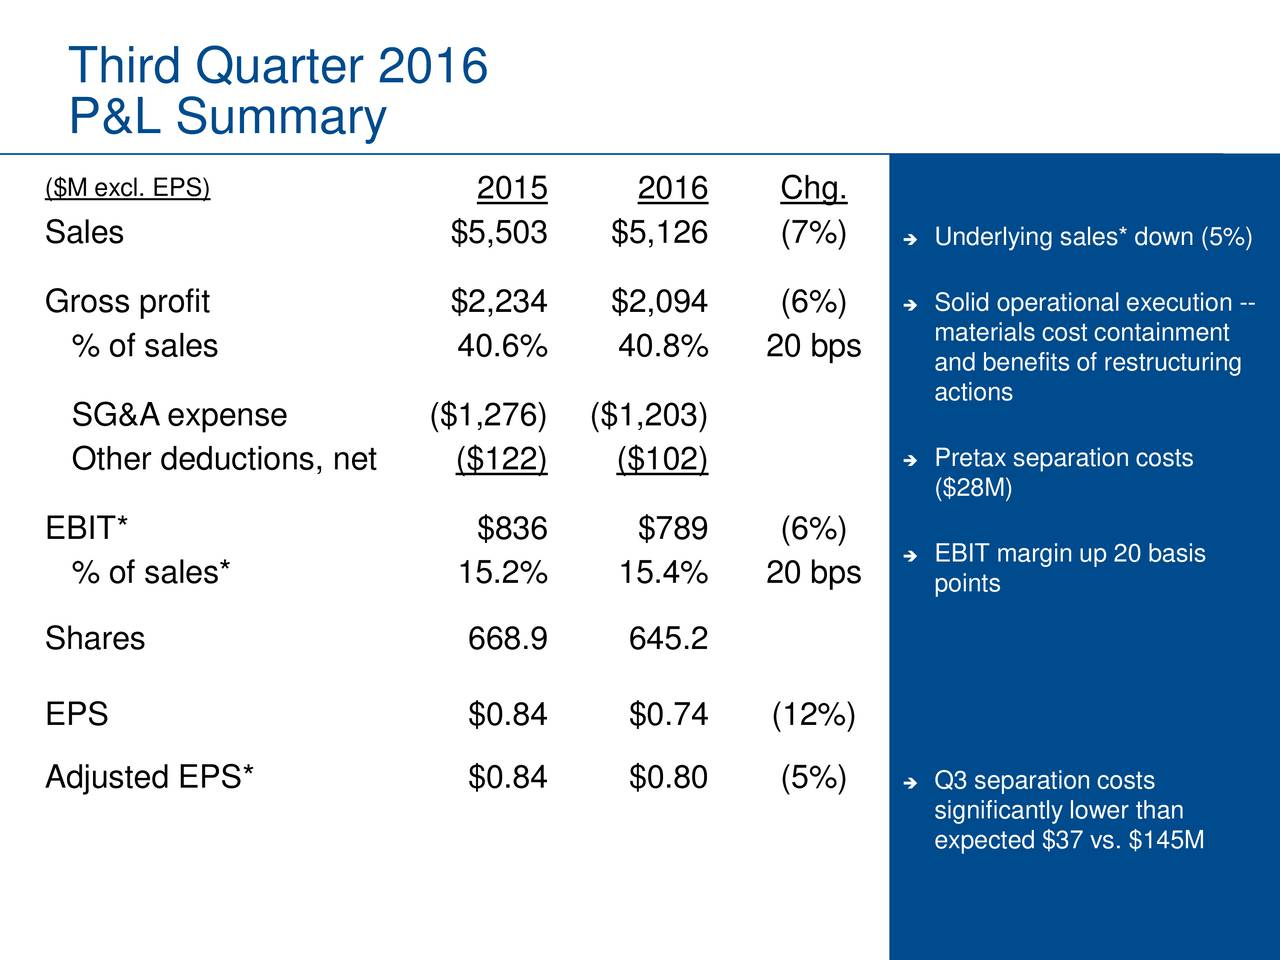 P&L Summary ($M excl. EPS) 2015 2016 Chg. Sales $5,503 $5,126 (7%)  Underlying sales* down (5%) Gross profit $2,234 $2,094 (6%)  Solid operational execution -- materials cost containment % of sales 40.6% 40.8% 20 bps and benefits of restructuring actions SG&A expense ($1,276) ($1,203) Other deductions, net ($122) ($102)  Pretax separation costs ($28M) EBIT* $836 $789 (6%) % of sales* 15.2% 15.4% 20 bps  EBIT margin up 20 basis points Shares 668.9 645.2 EPS $0.84 $0.74 (12%) Adjusted EPS* $0.84 $0.80 (5%)  Q3 separation costs significantly lower than expected $37 vs. $145M 3